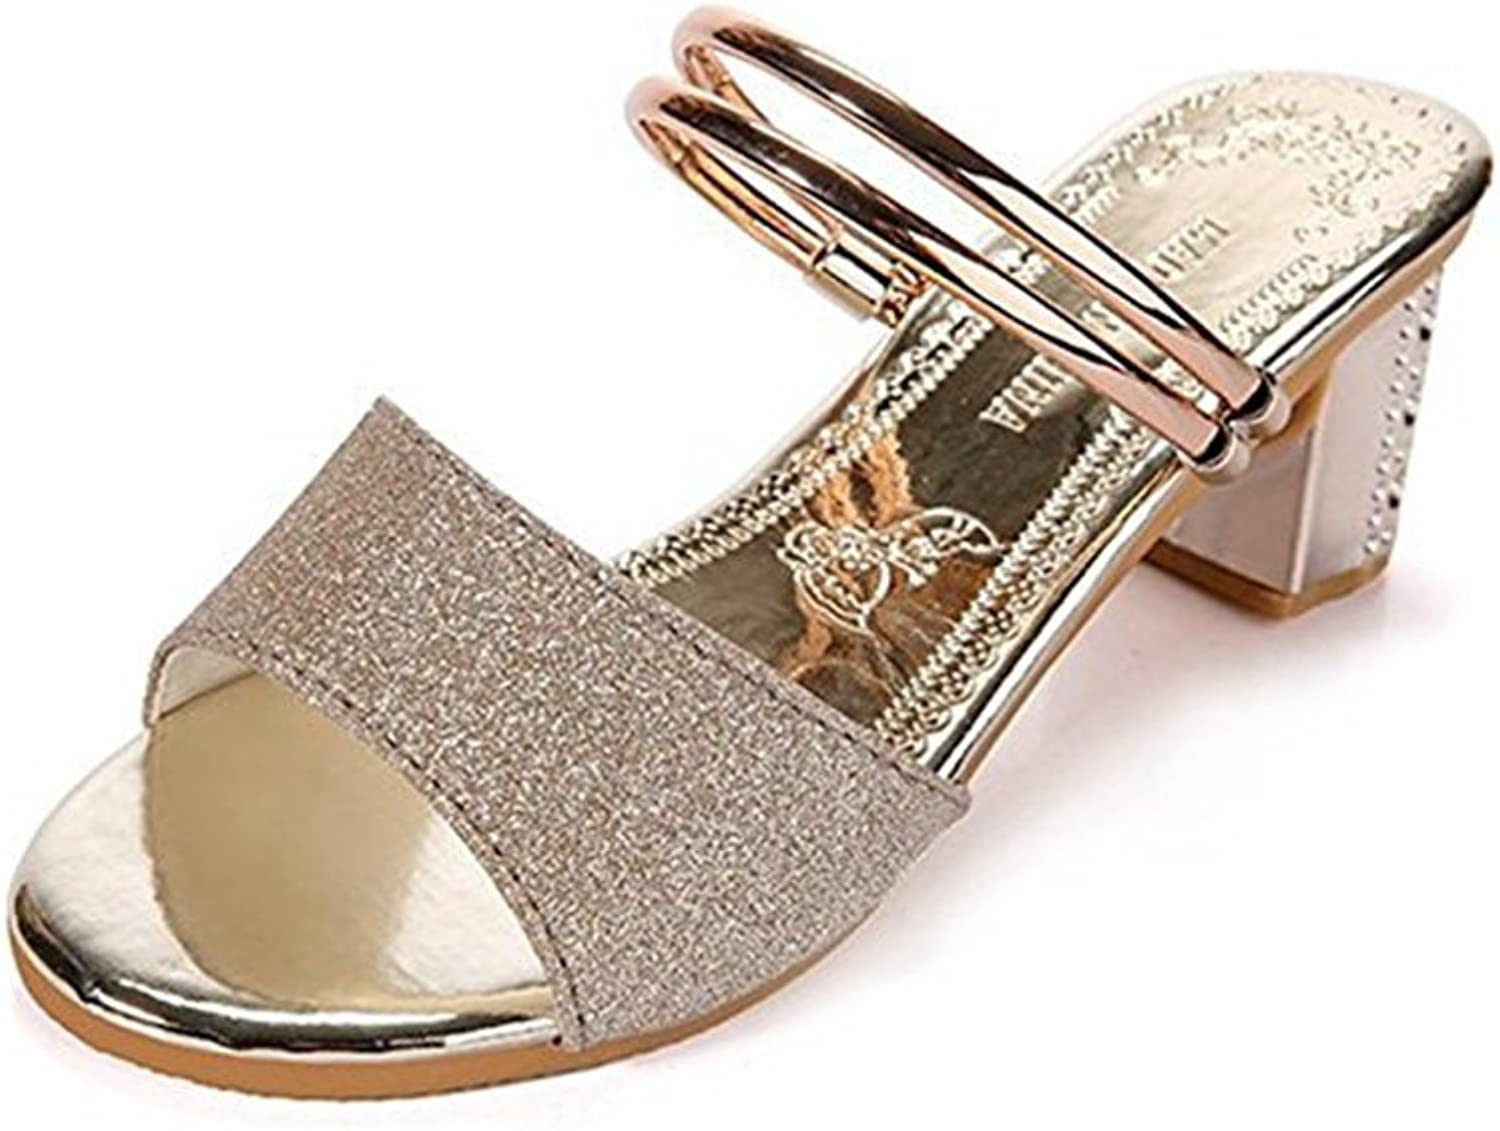 T-JULY Ladies Sparkle Glitter Sequins Open Toe Ankle Strap Sandals for Womens Chunky Heels Dress Pumps shoes